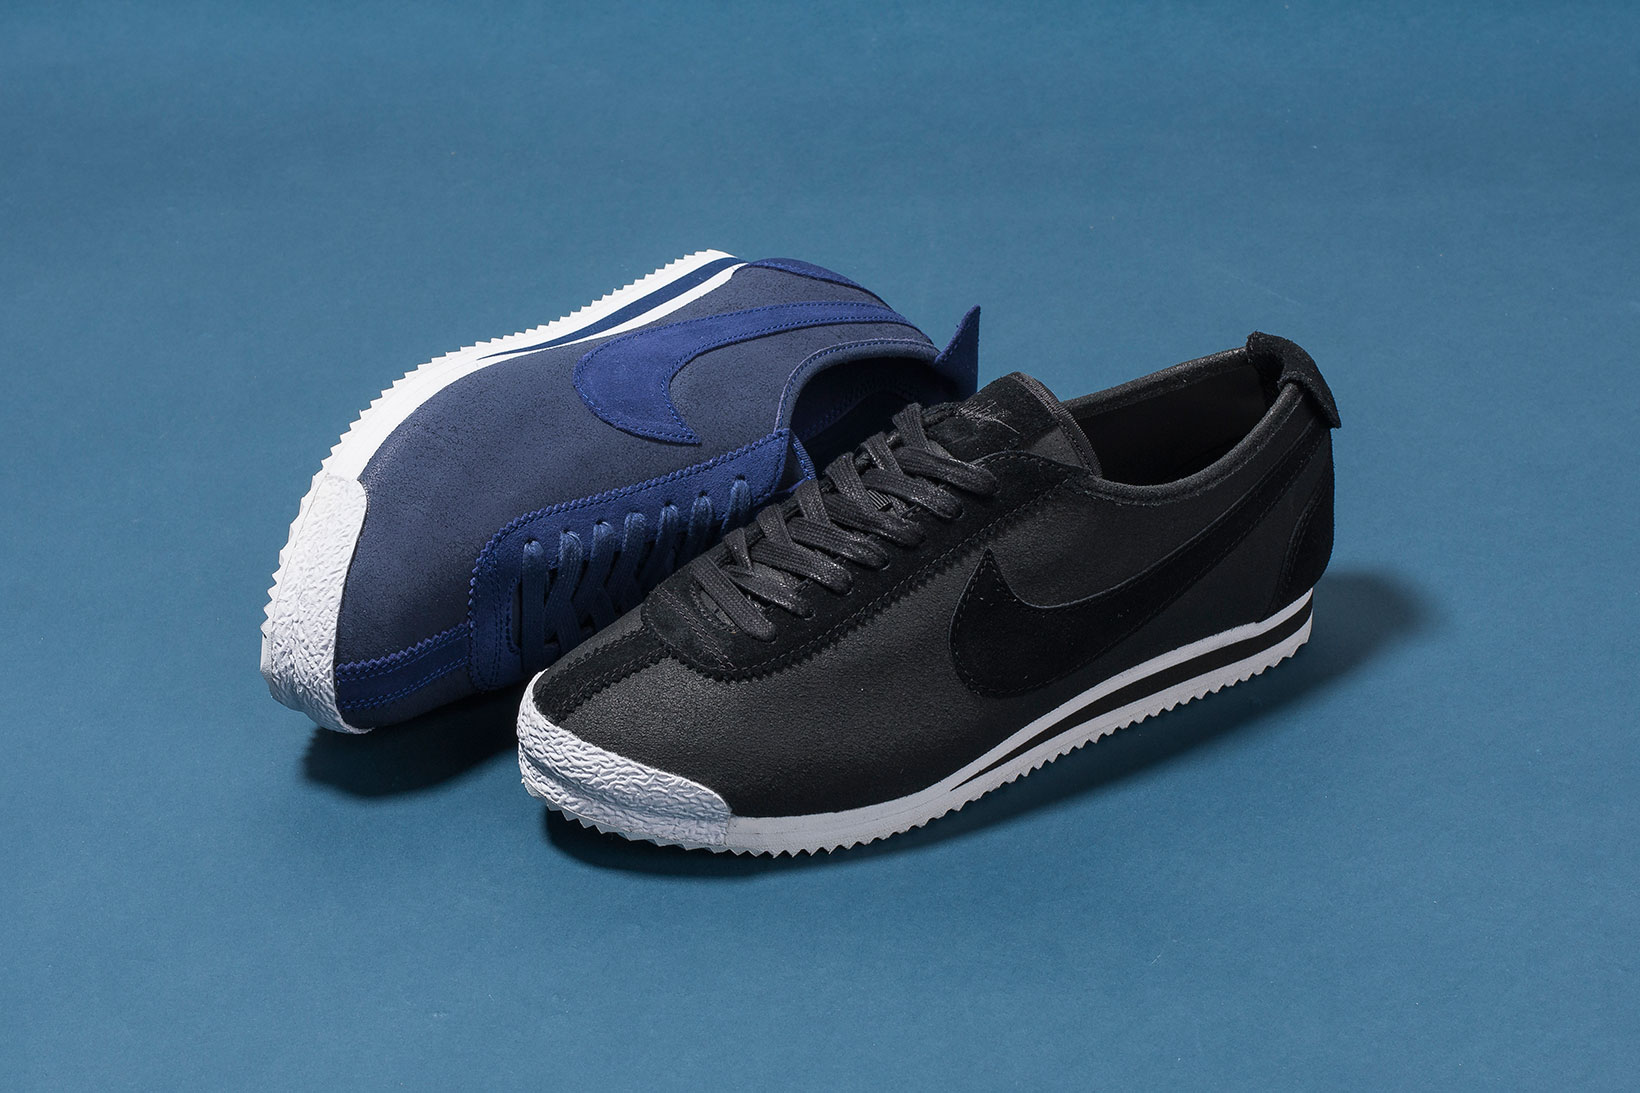 nike cortez 72 qs in black and loyal blue sneakers hypebeast. Black Bedroom Furniture Sets. Home Design Ideas